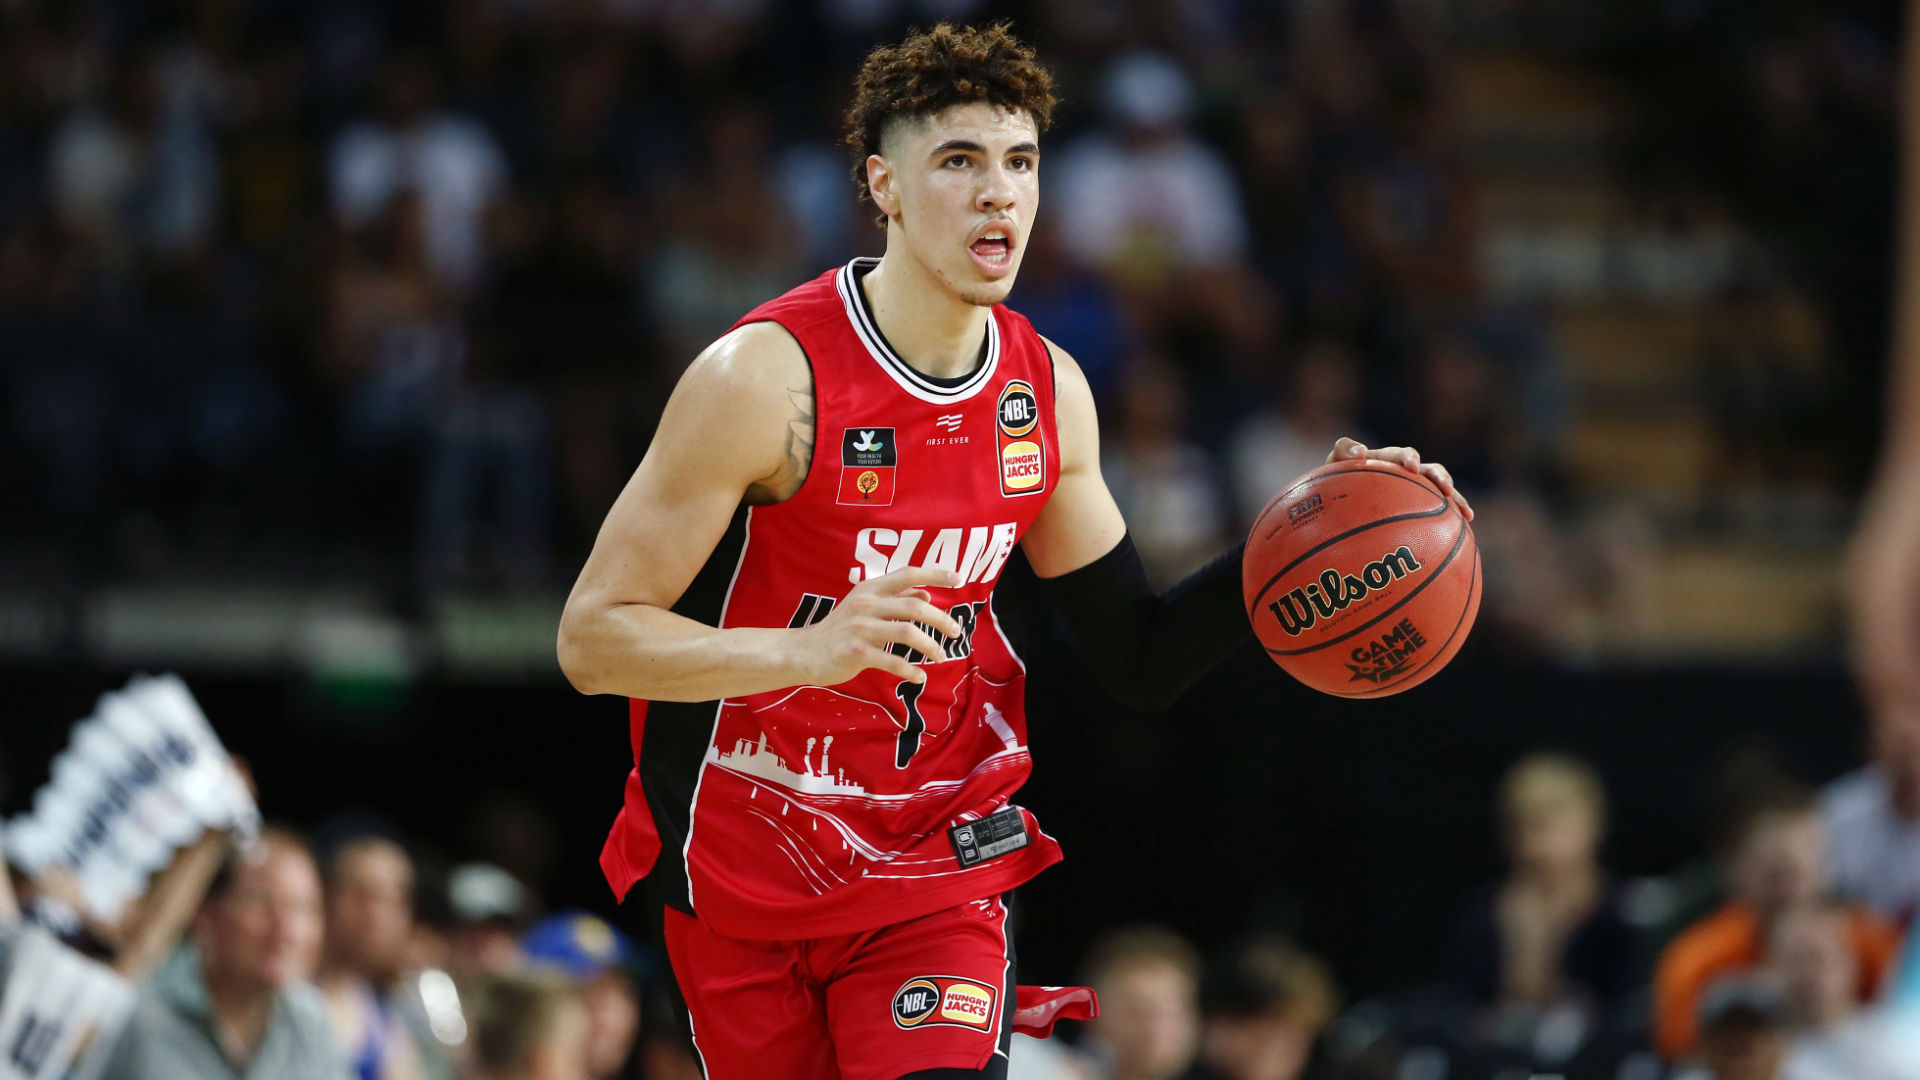 LaMelo Ball officially signs multi-year endorsement deal with Puma